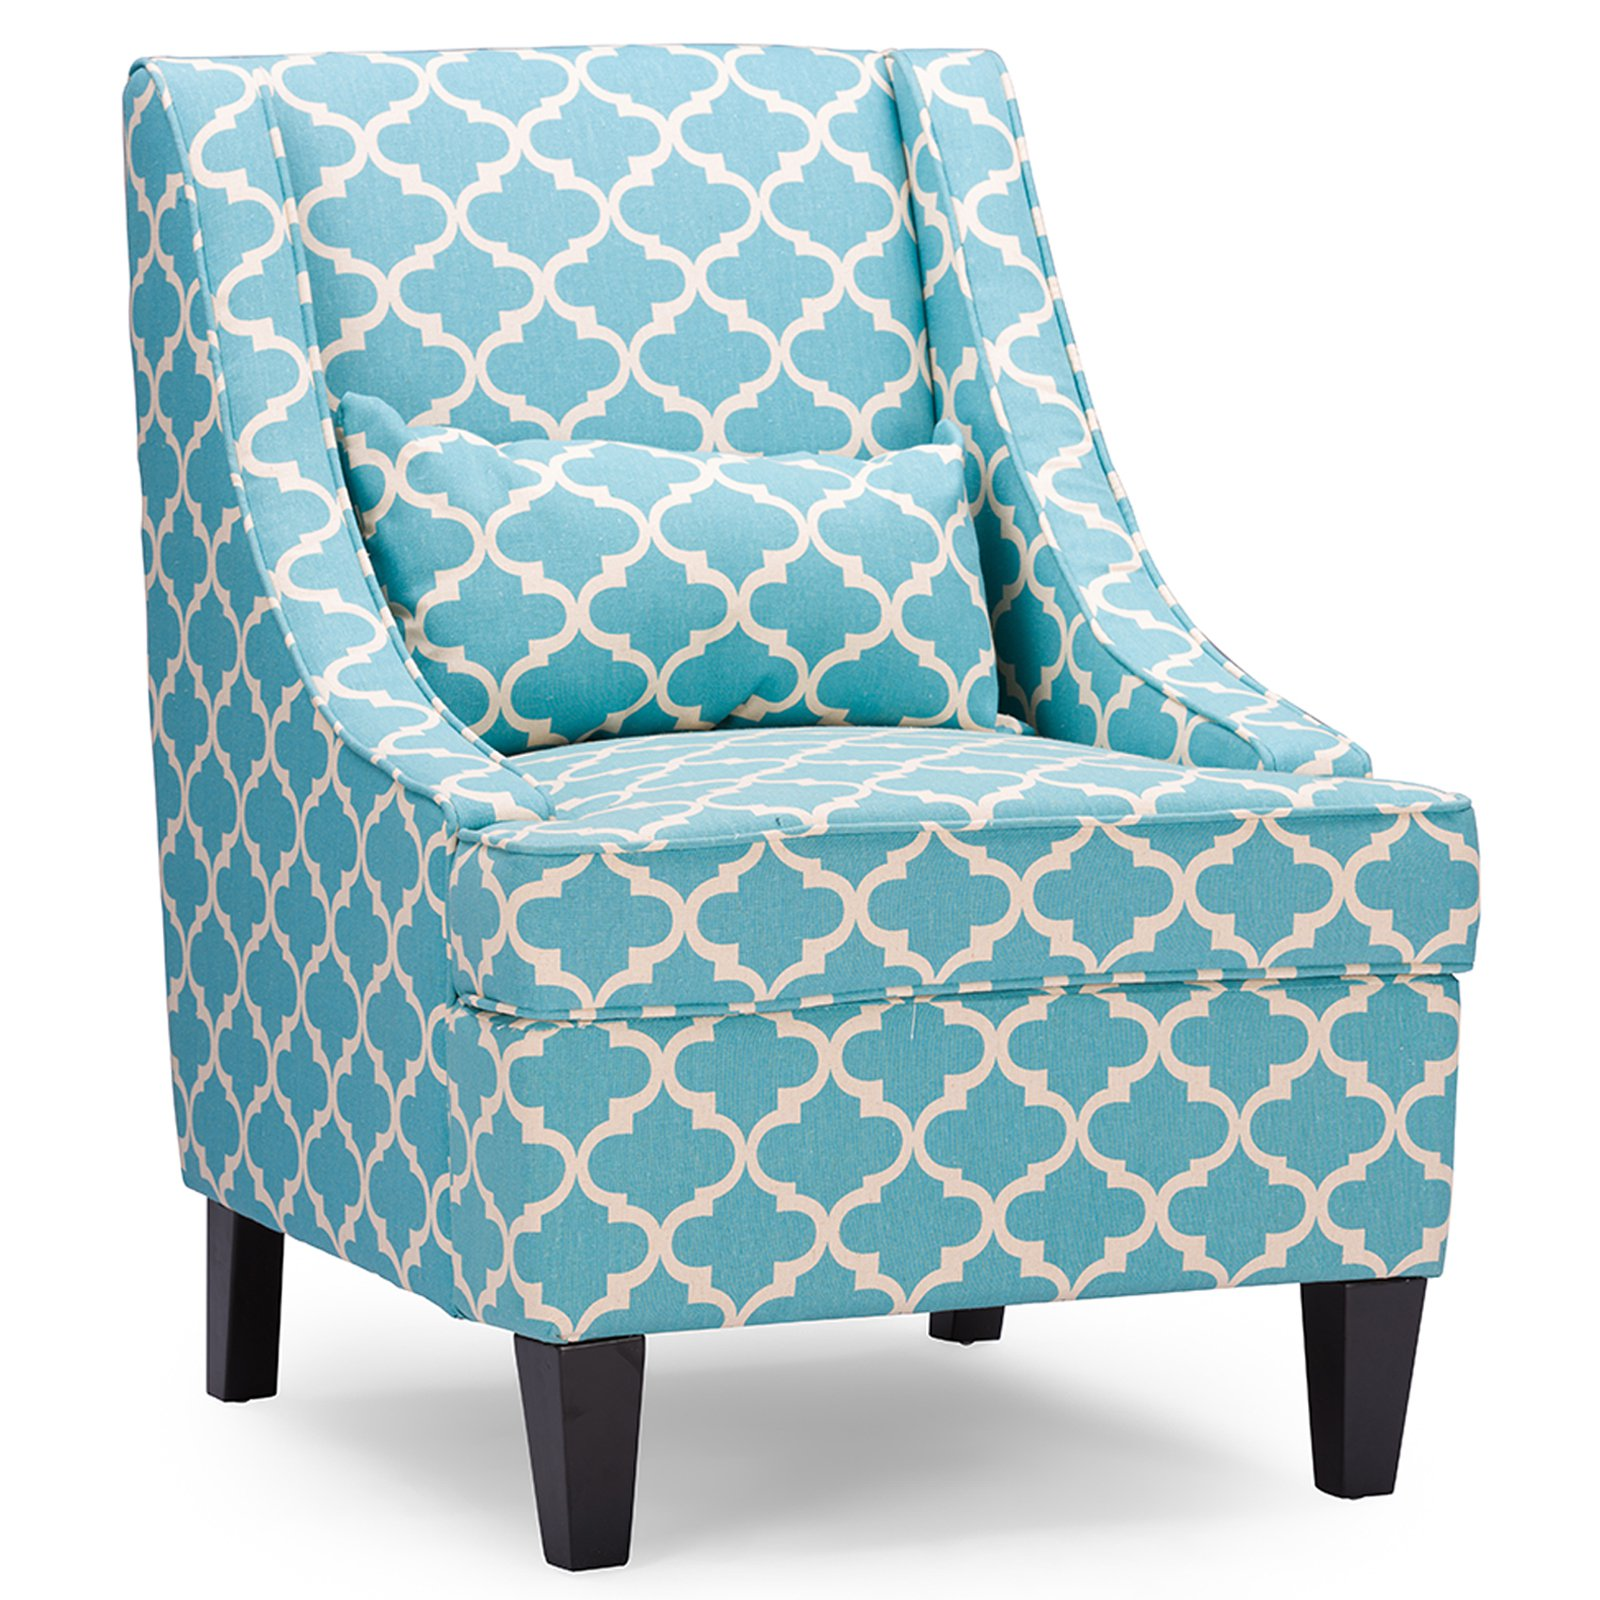 Baxton Studio Lotus Contemporary Fabric Armchair, Blue-Patterned Fabric by Wholesale Interiors